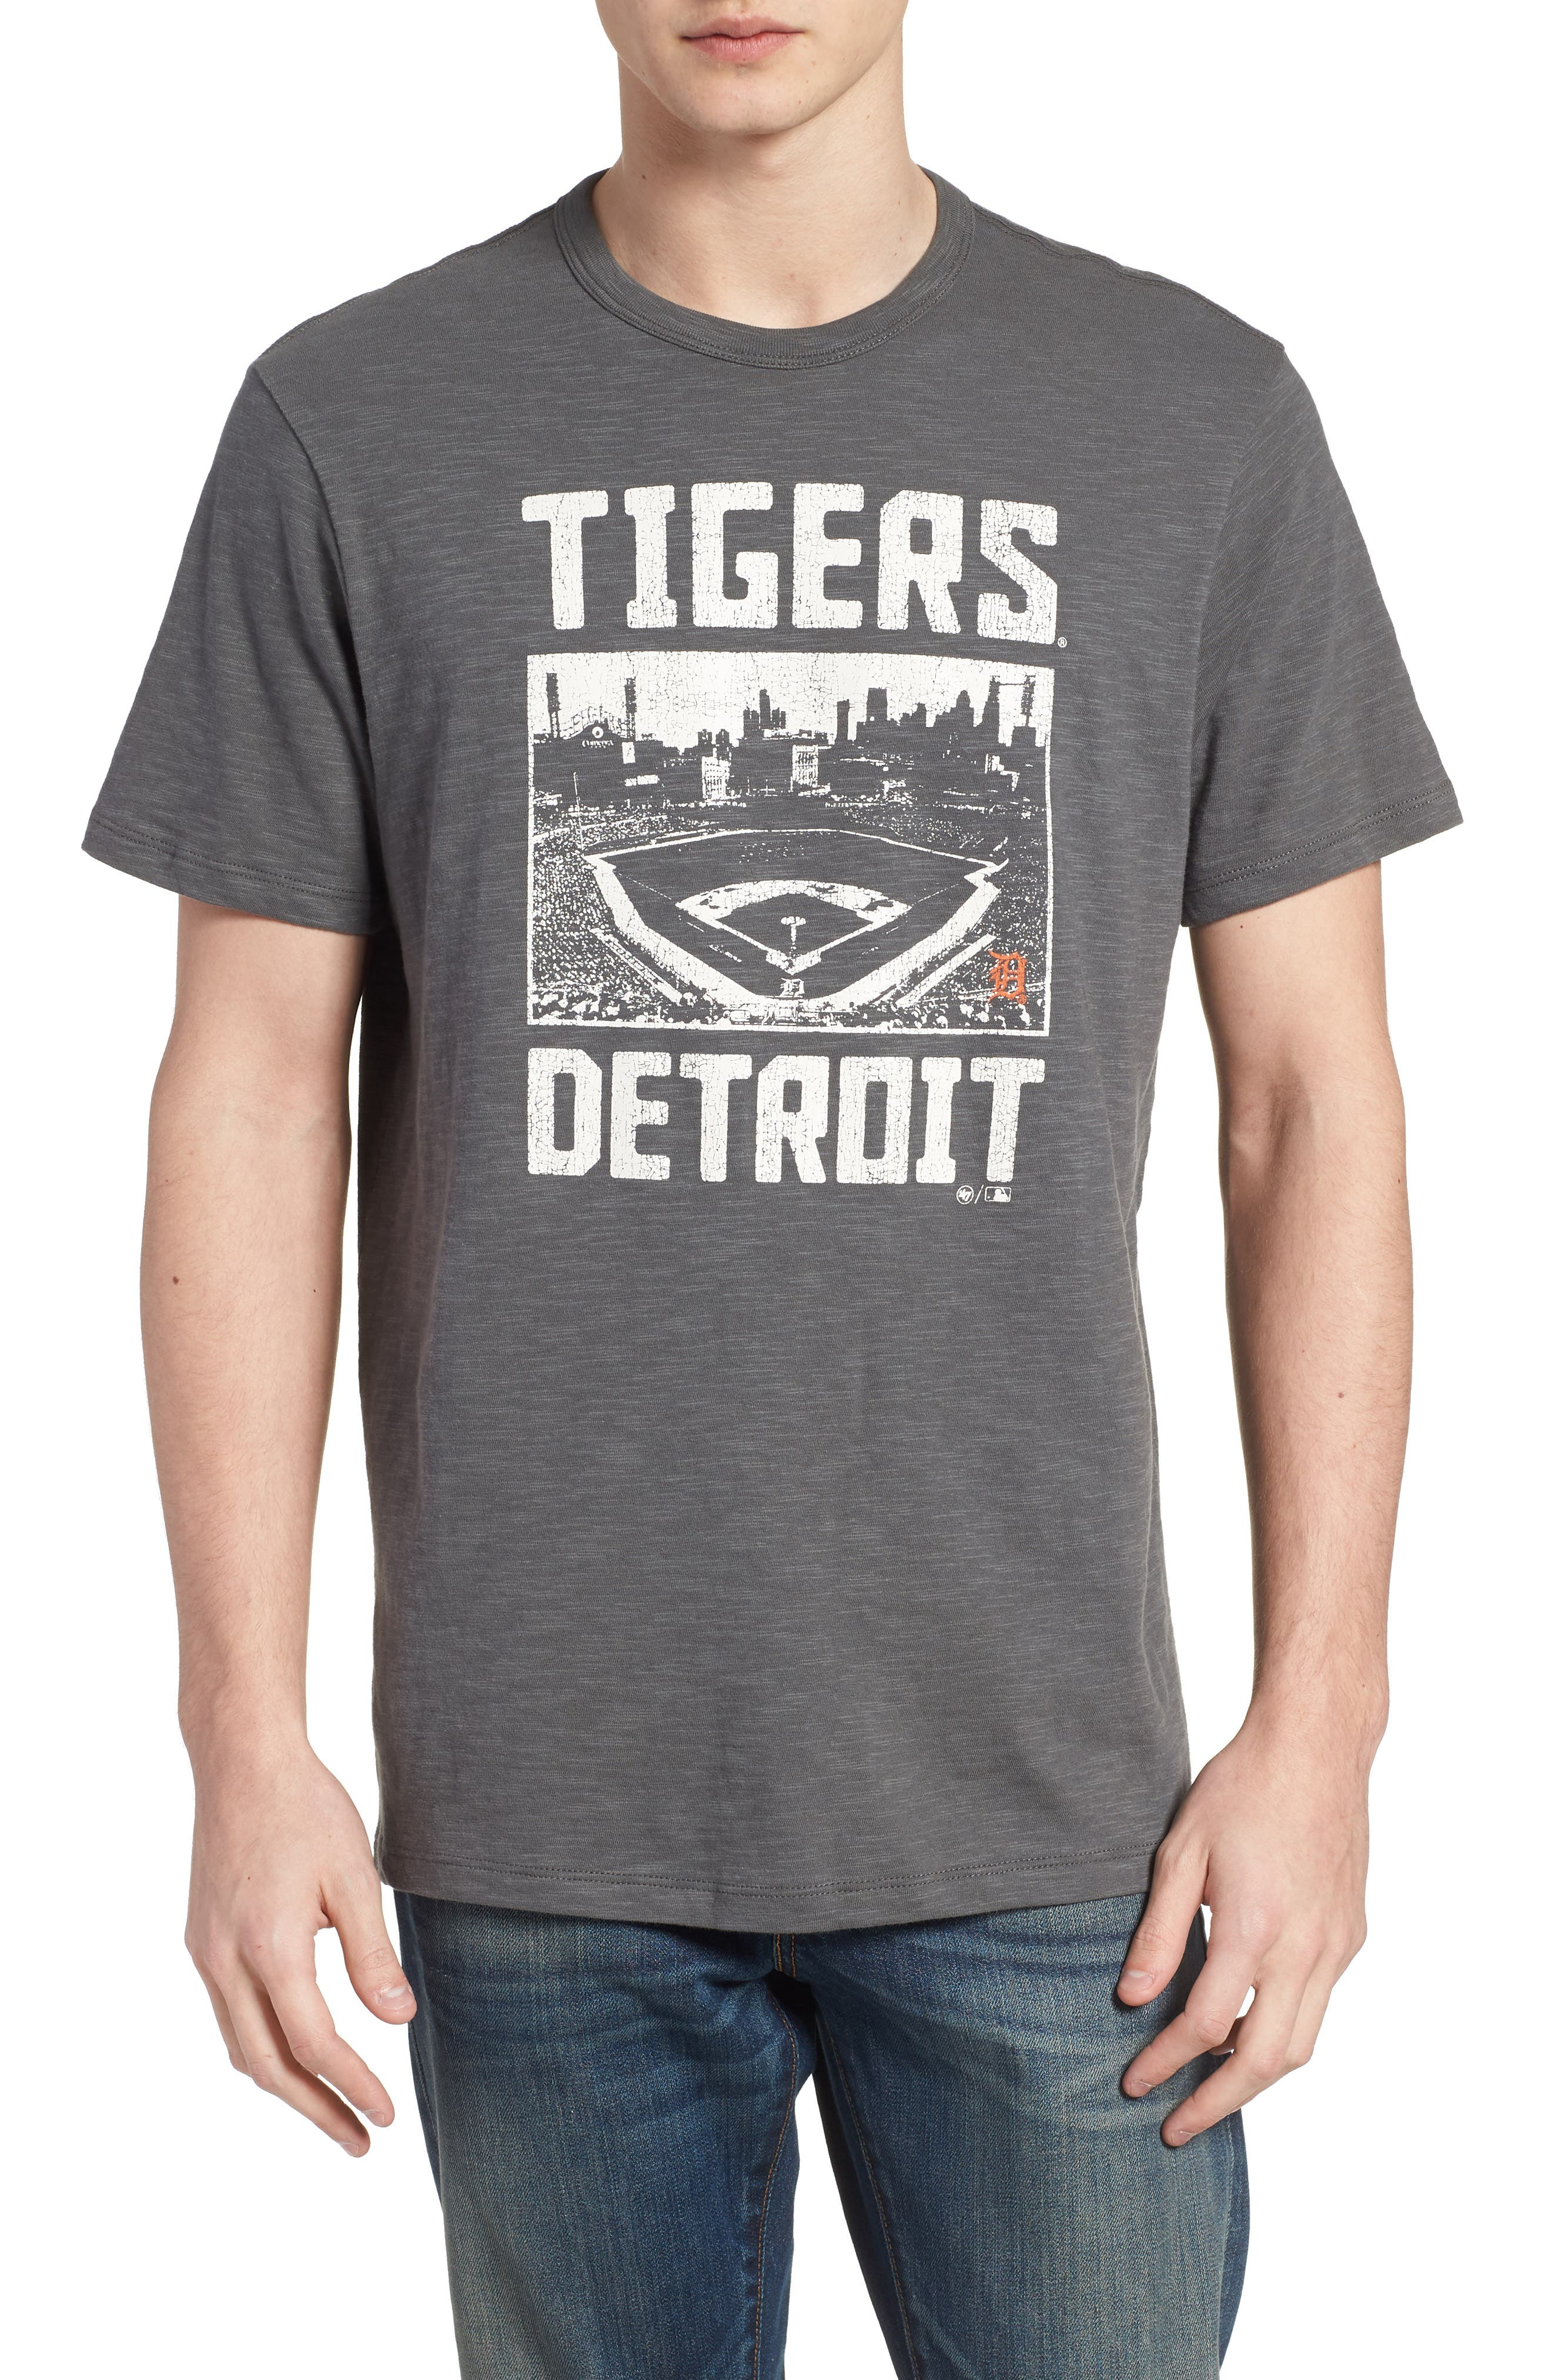 MLB Overdrive Scrum Detroit Tigers T-Shirt,                             Main thumbnail 1, color,                             Submarine